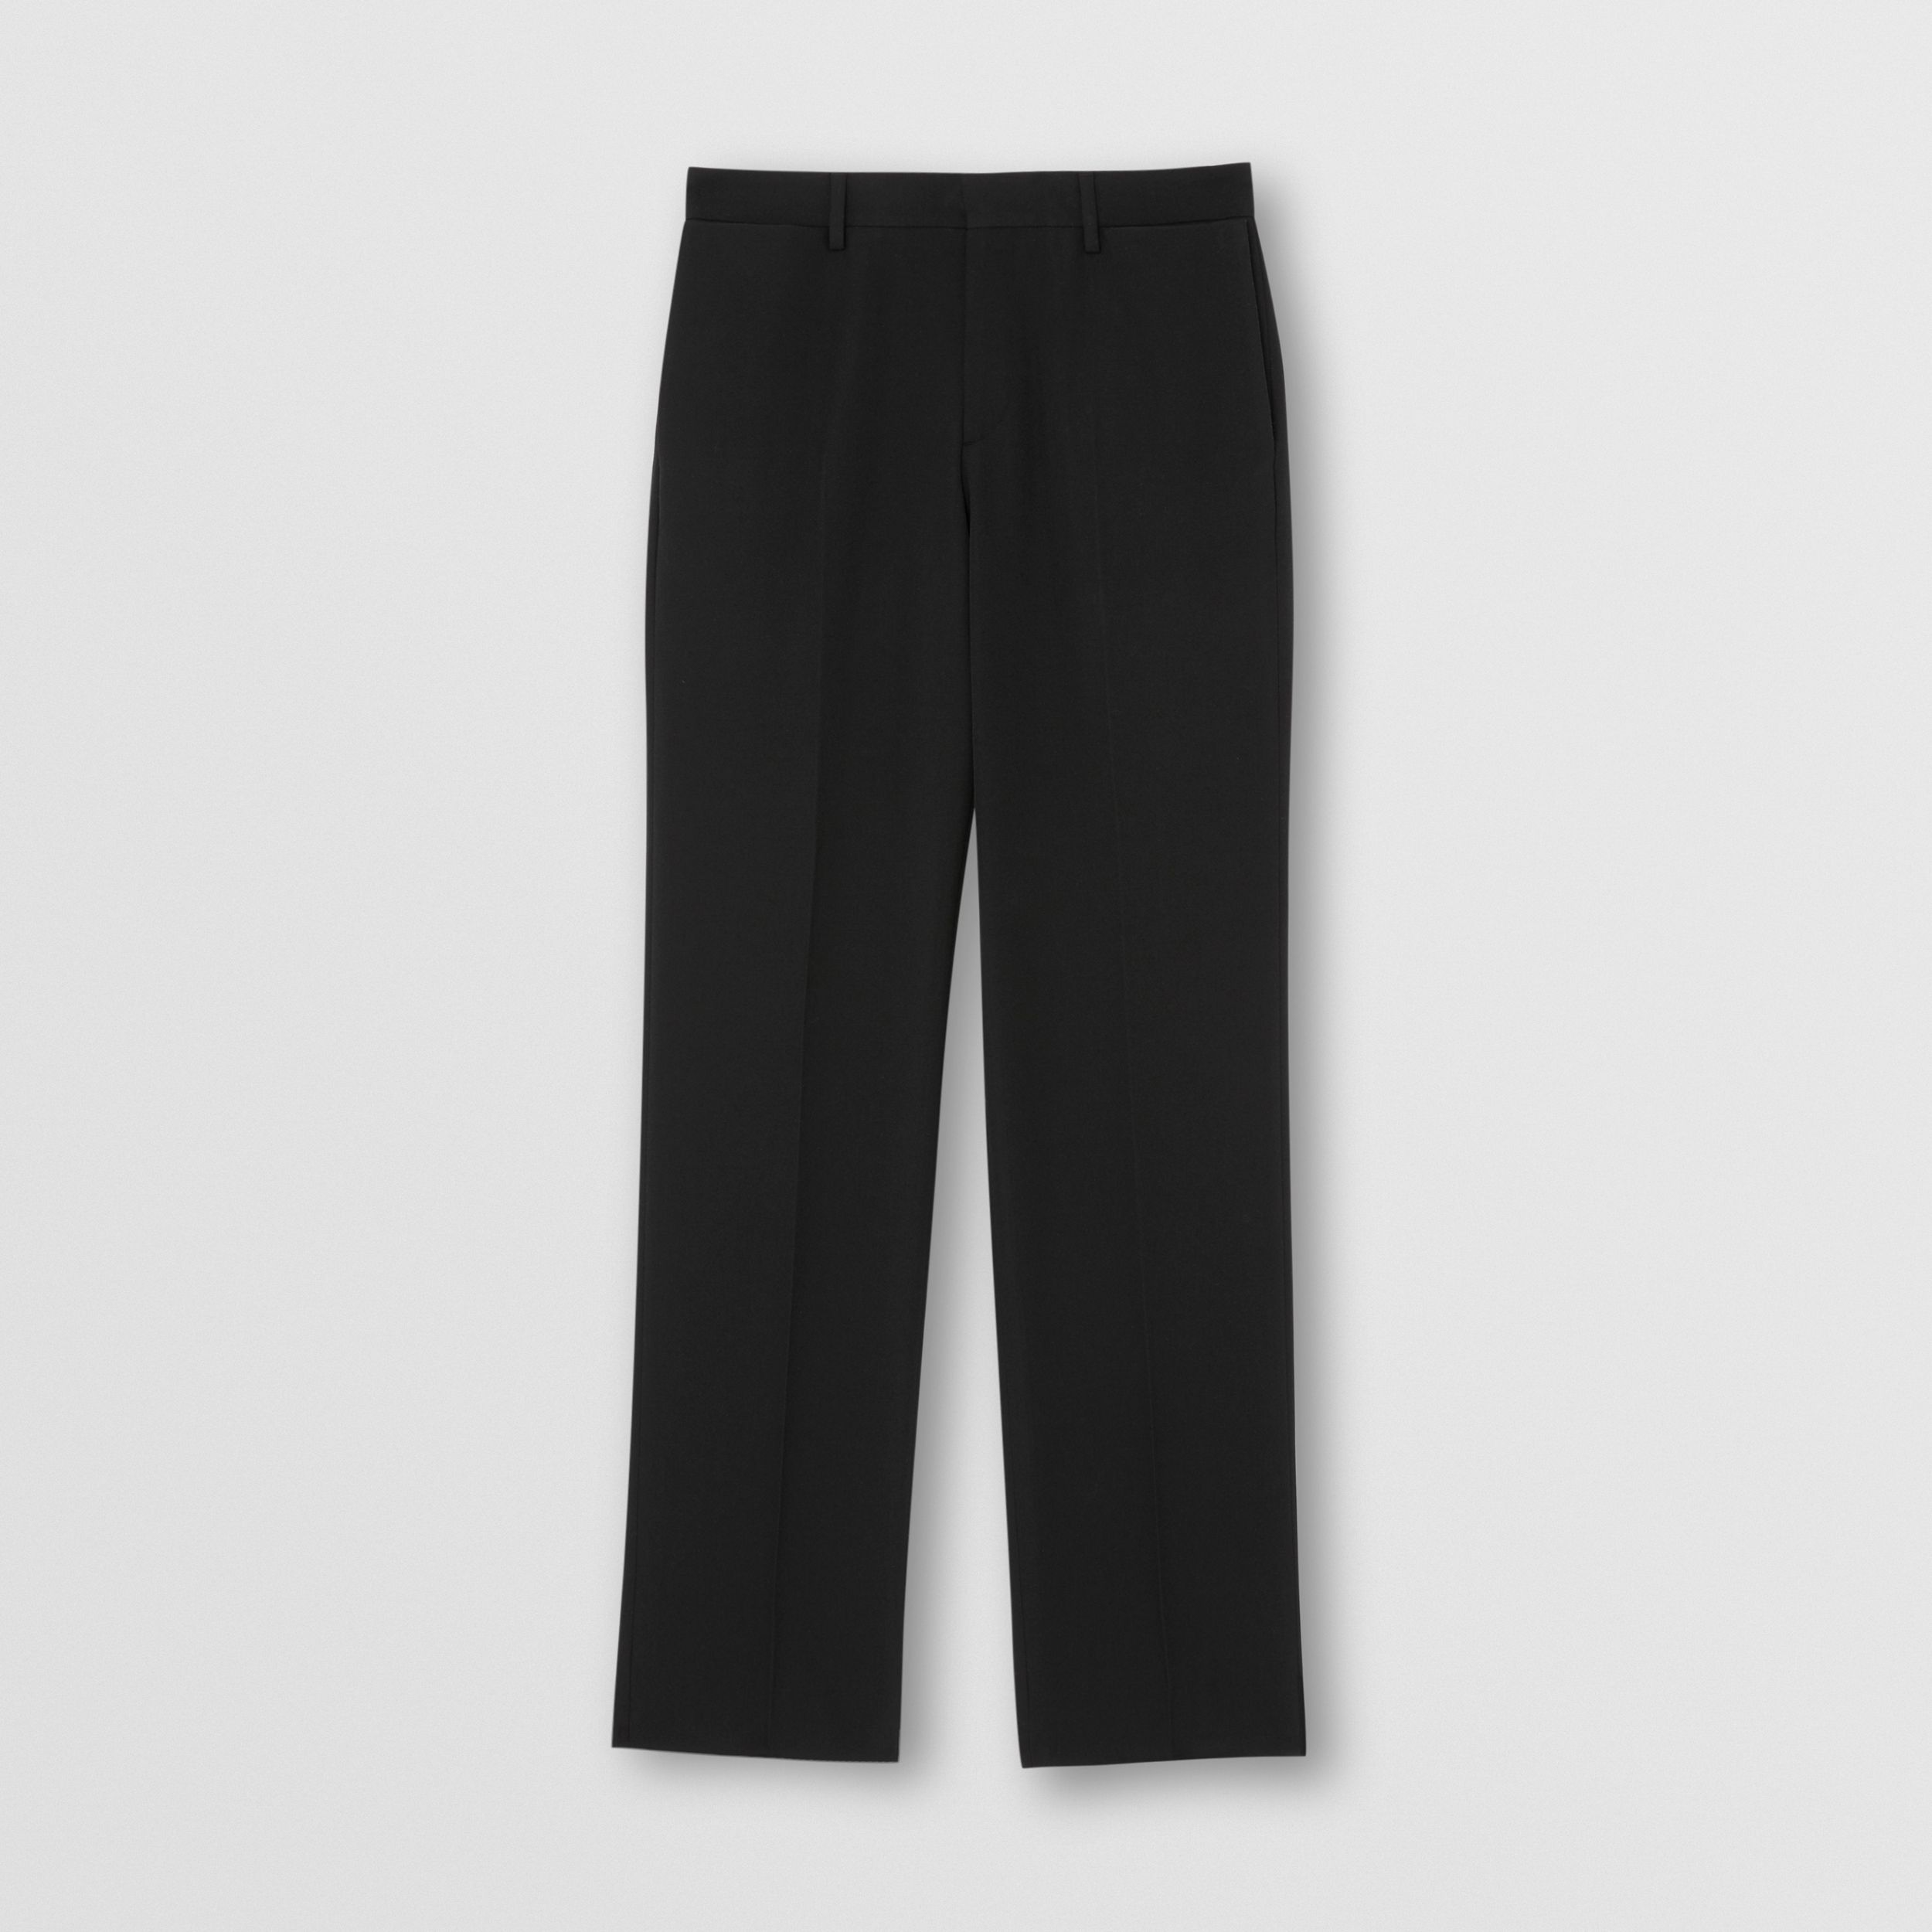 English Fit Pocket Detail Wool Tailored Trousers in Black - Men | Burberry - 4